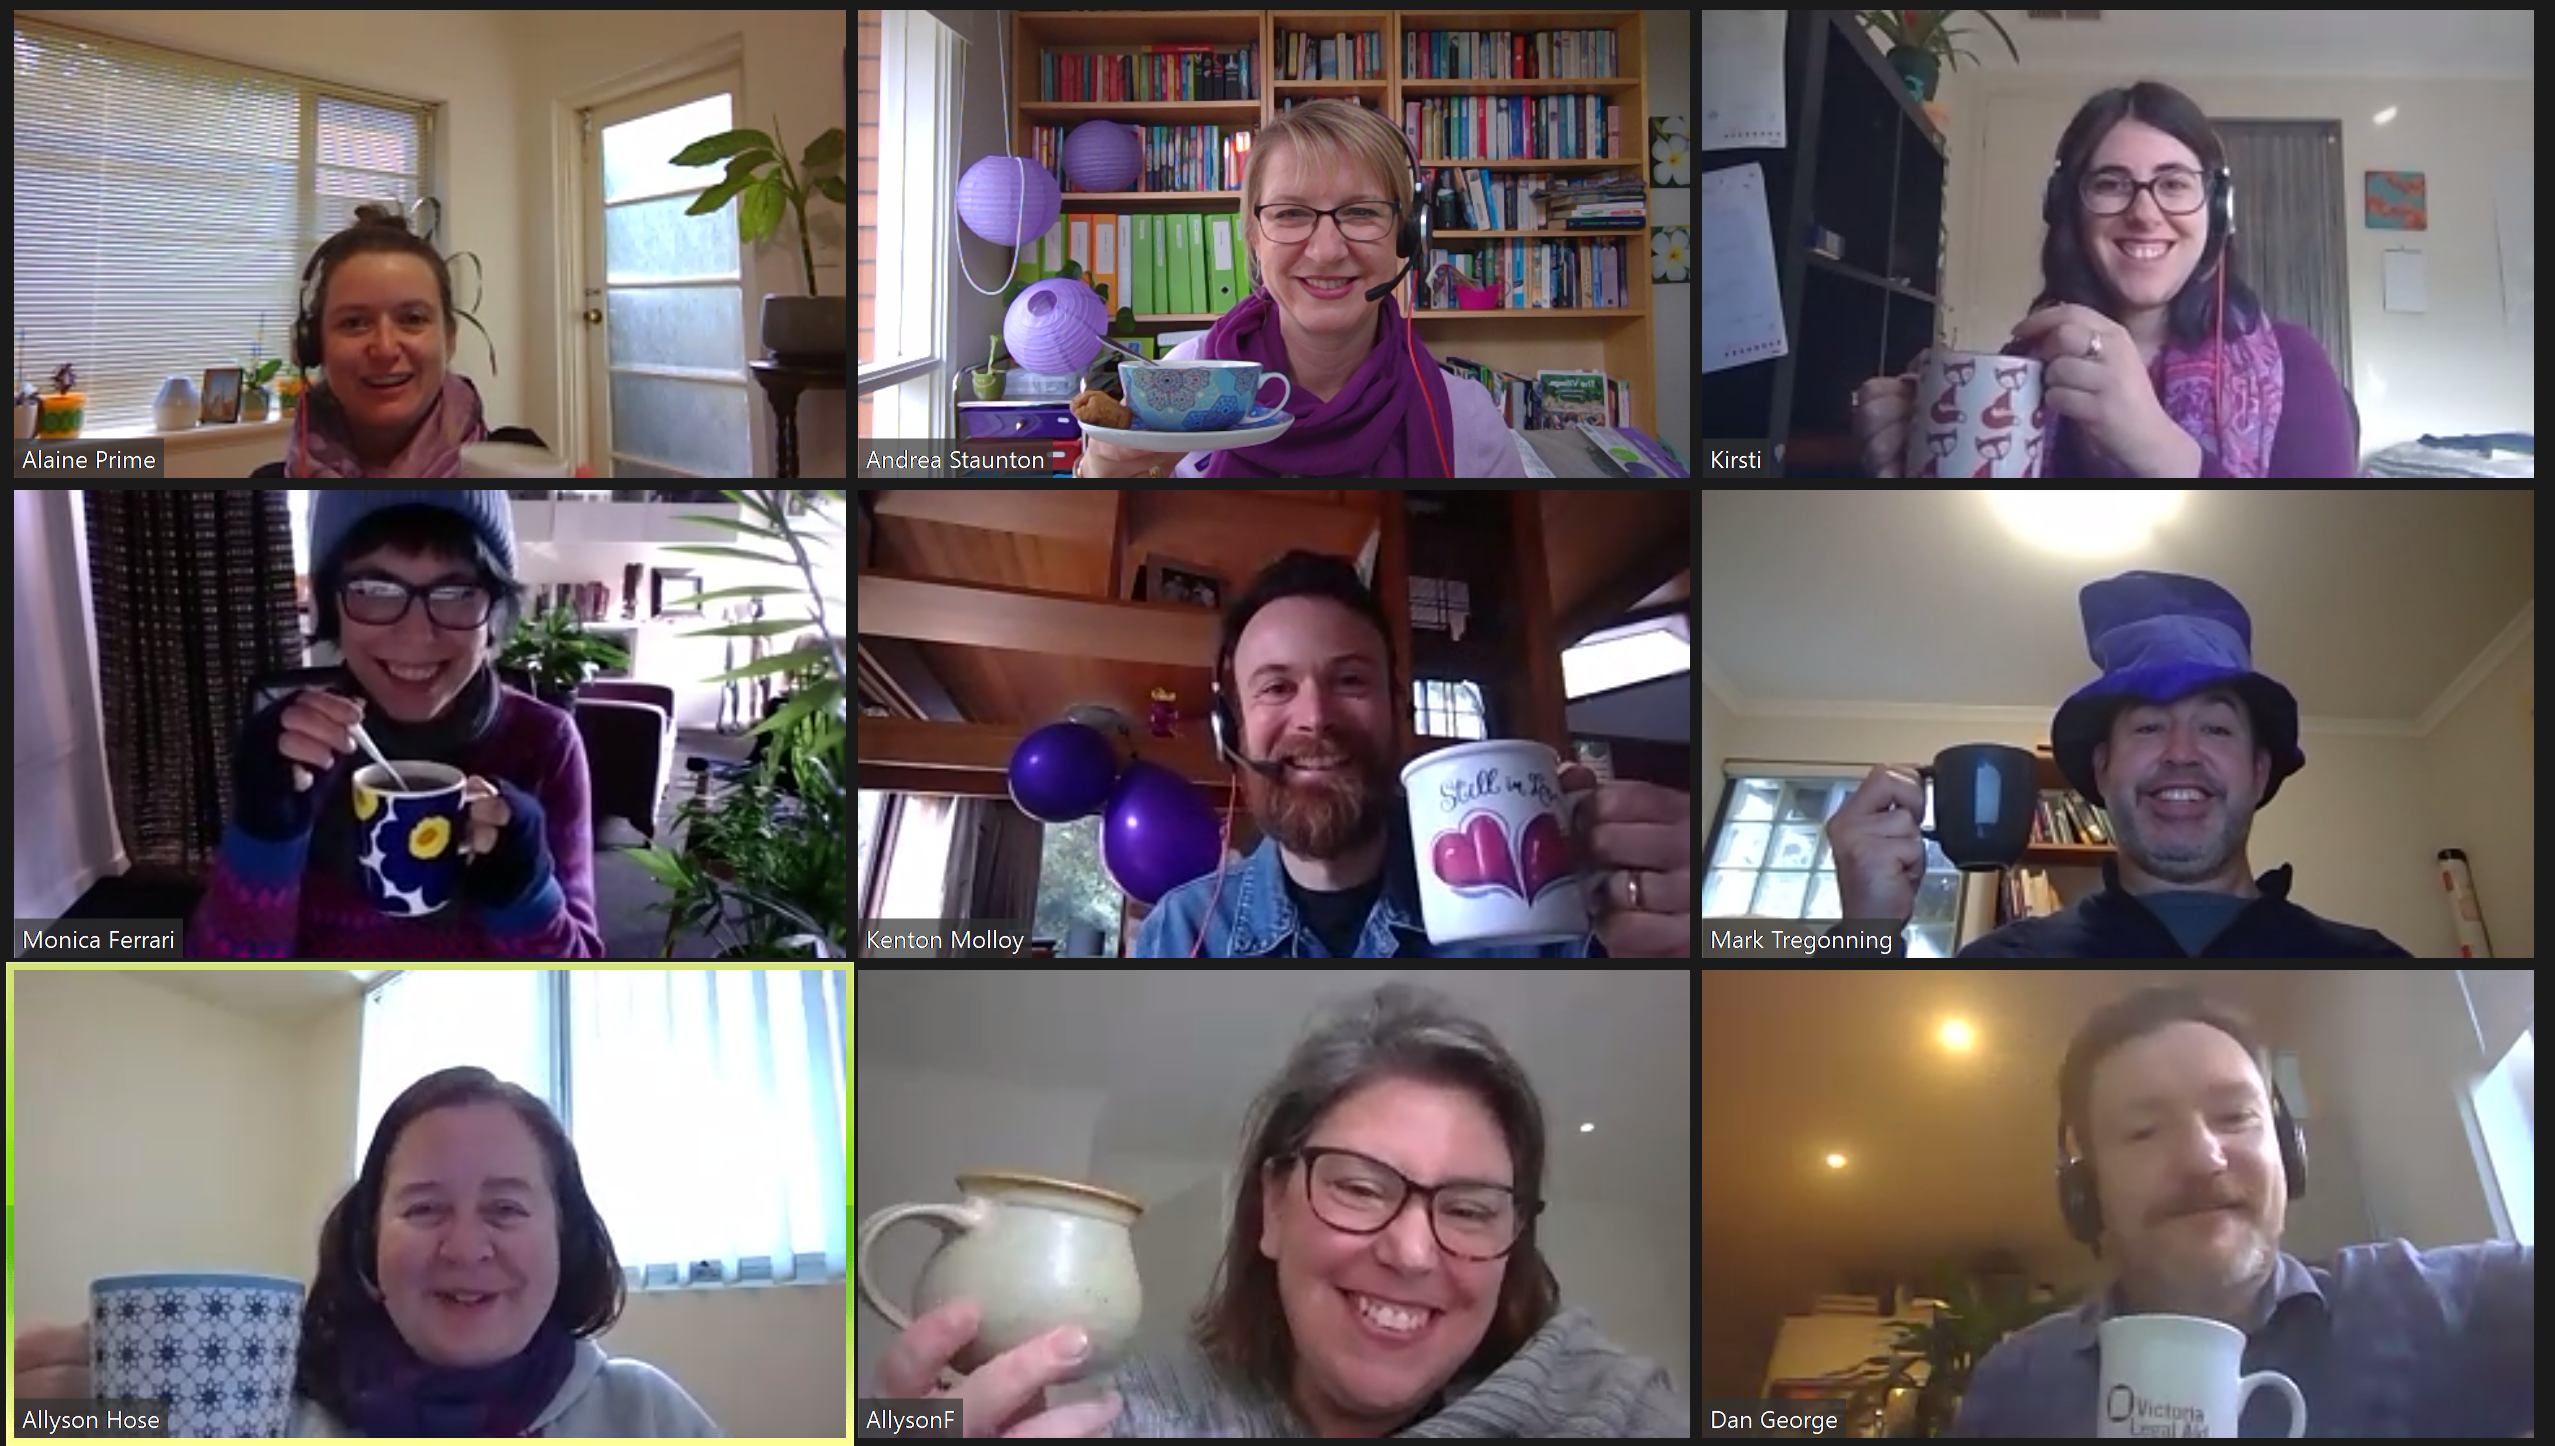 A screenshot of an online Zoom 'Stir A Cuppa For Seniors' event at VLA, with everyone wearing purple and having a cuppa.